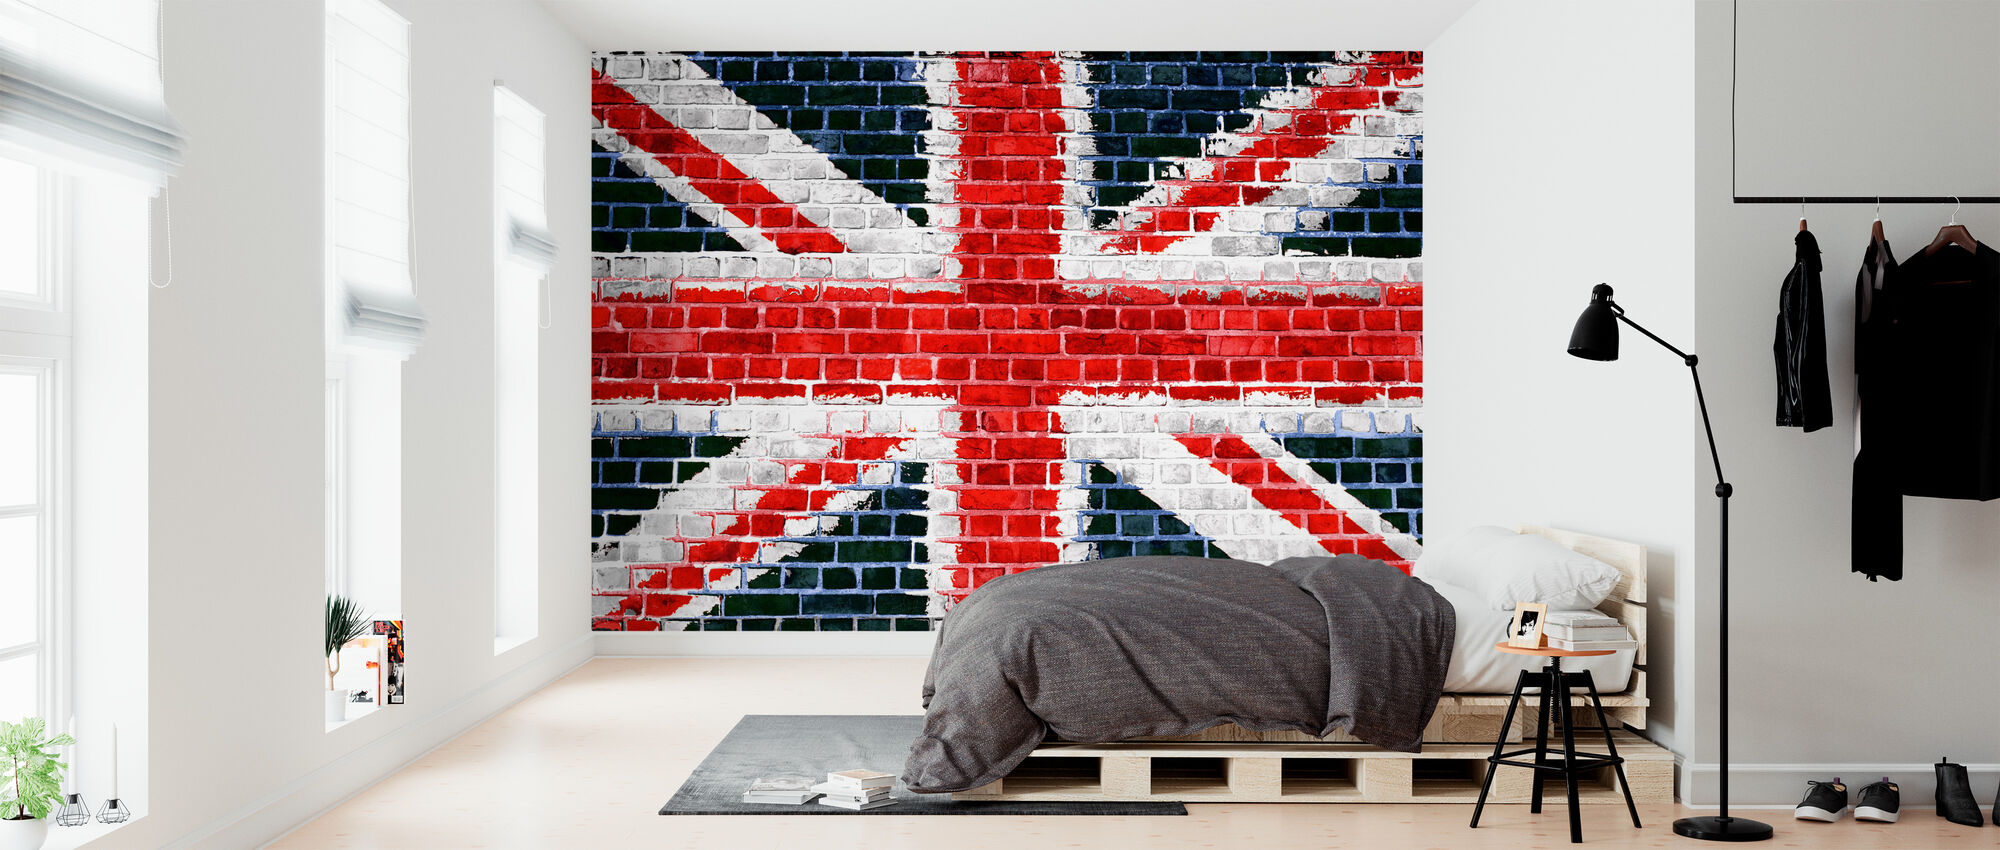 Union Jack Brick Wall - Wallpaper - Bedroom